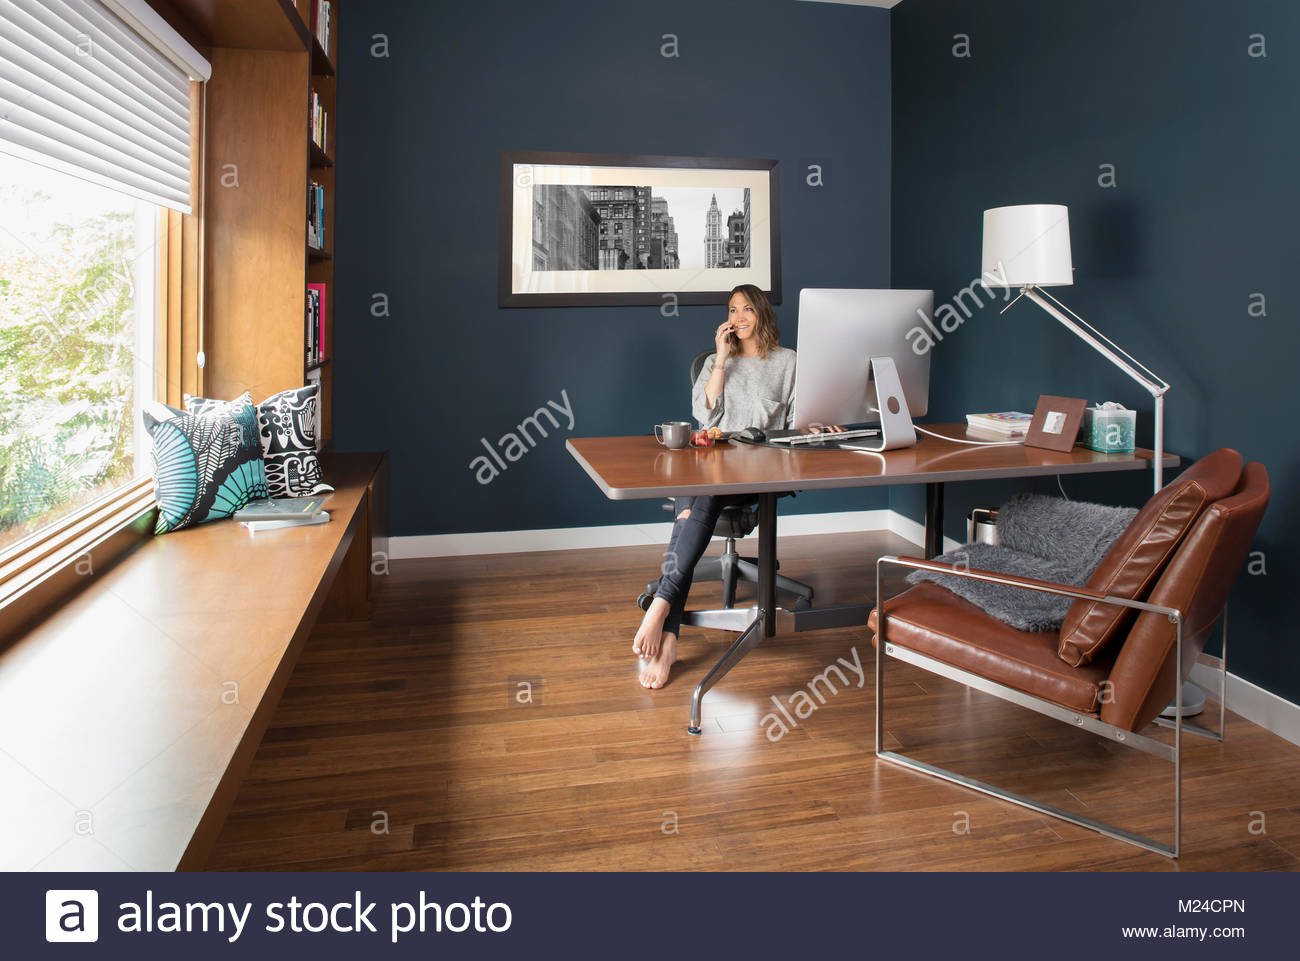 Woman talking on cell phone at computer in home office - Stock Image